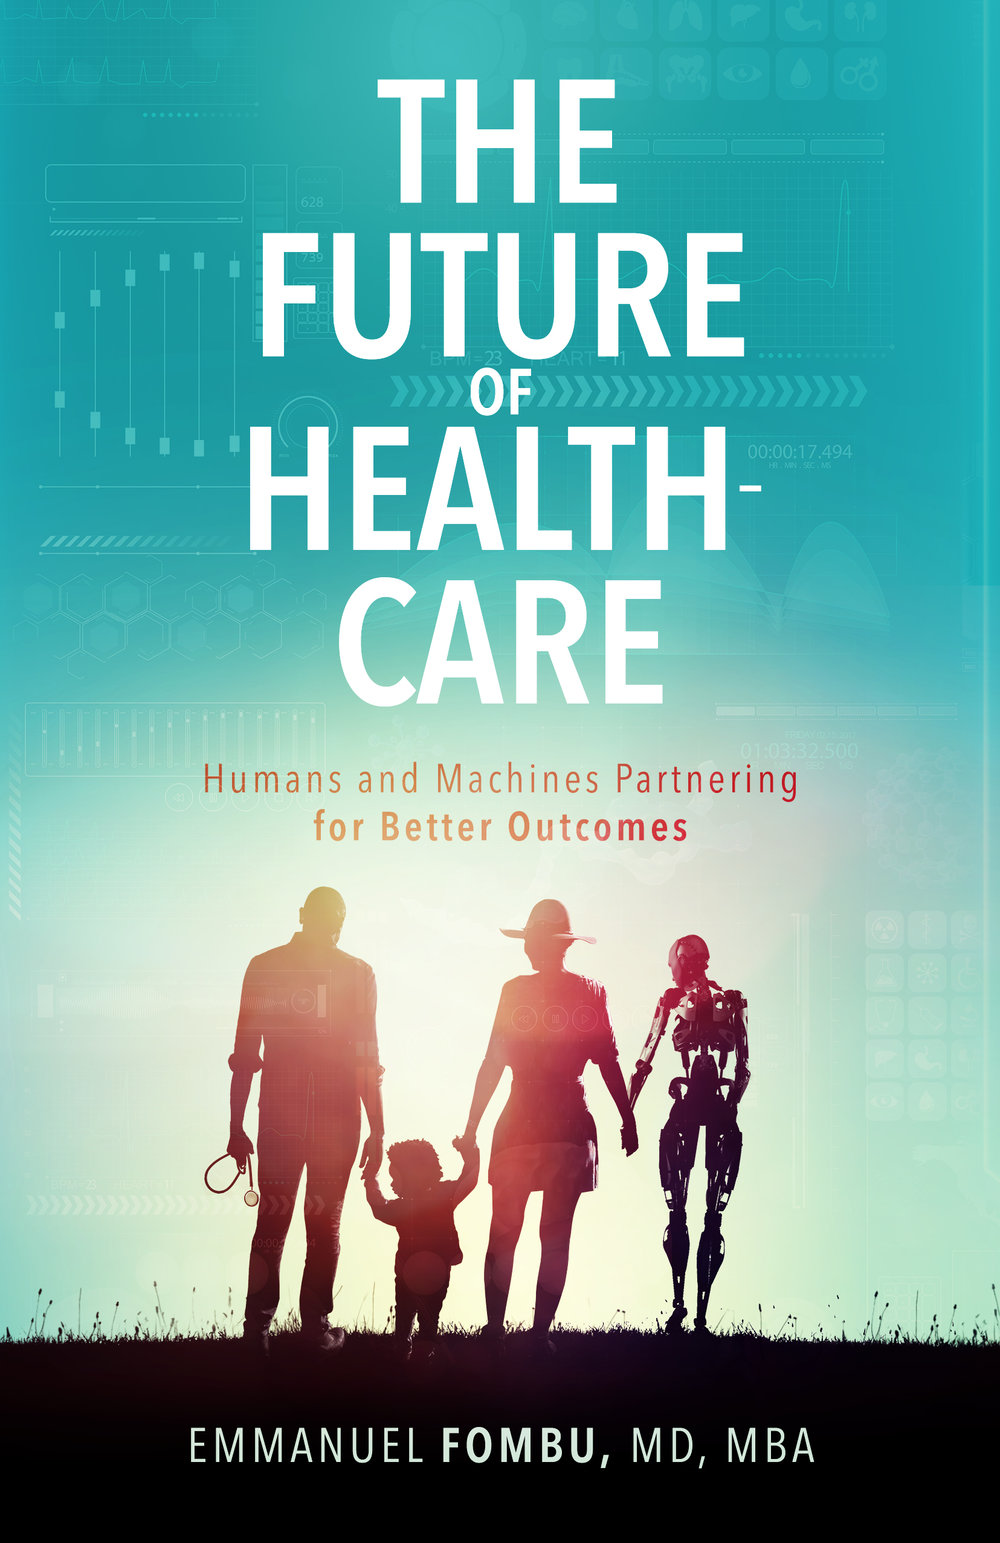 Emmanuel Fombu - The Future of Healthcare.jpg